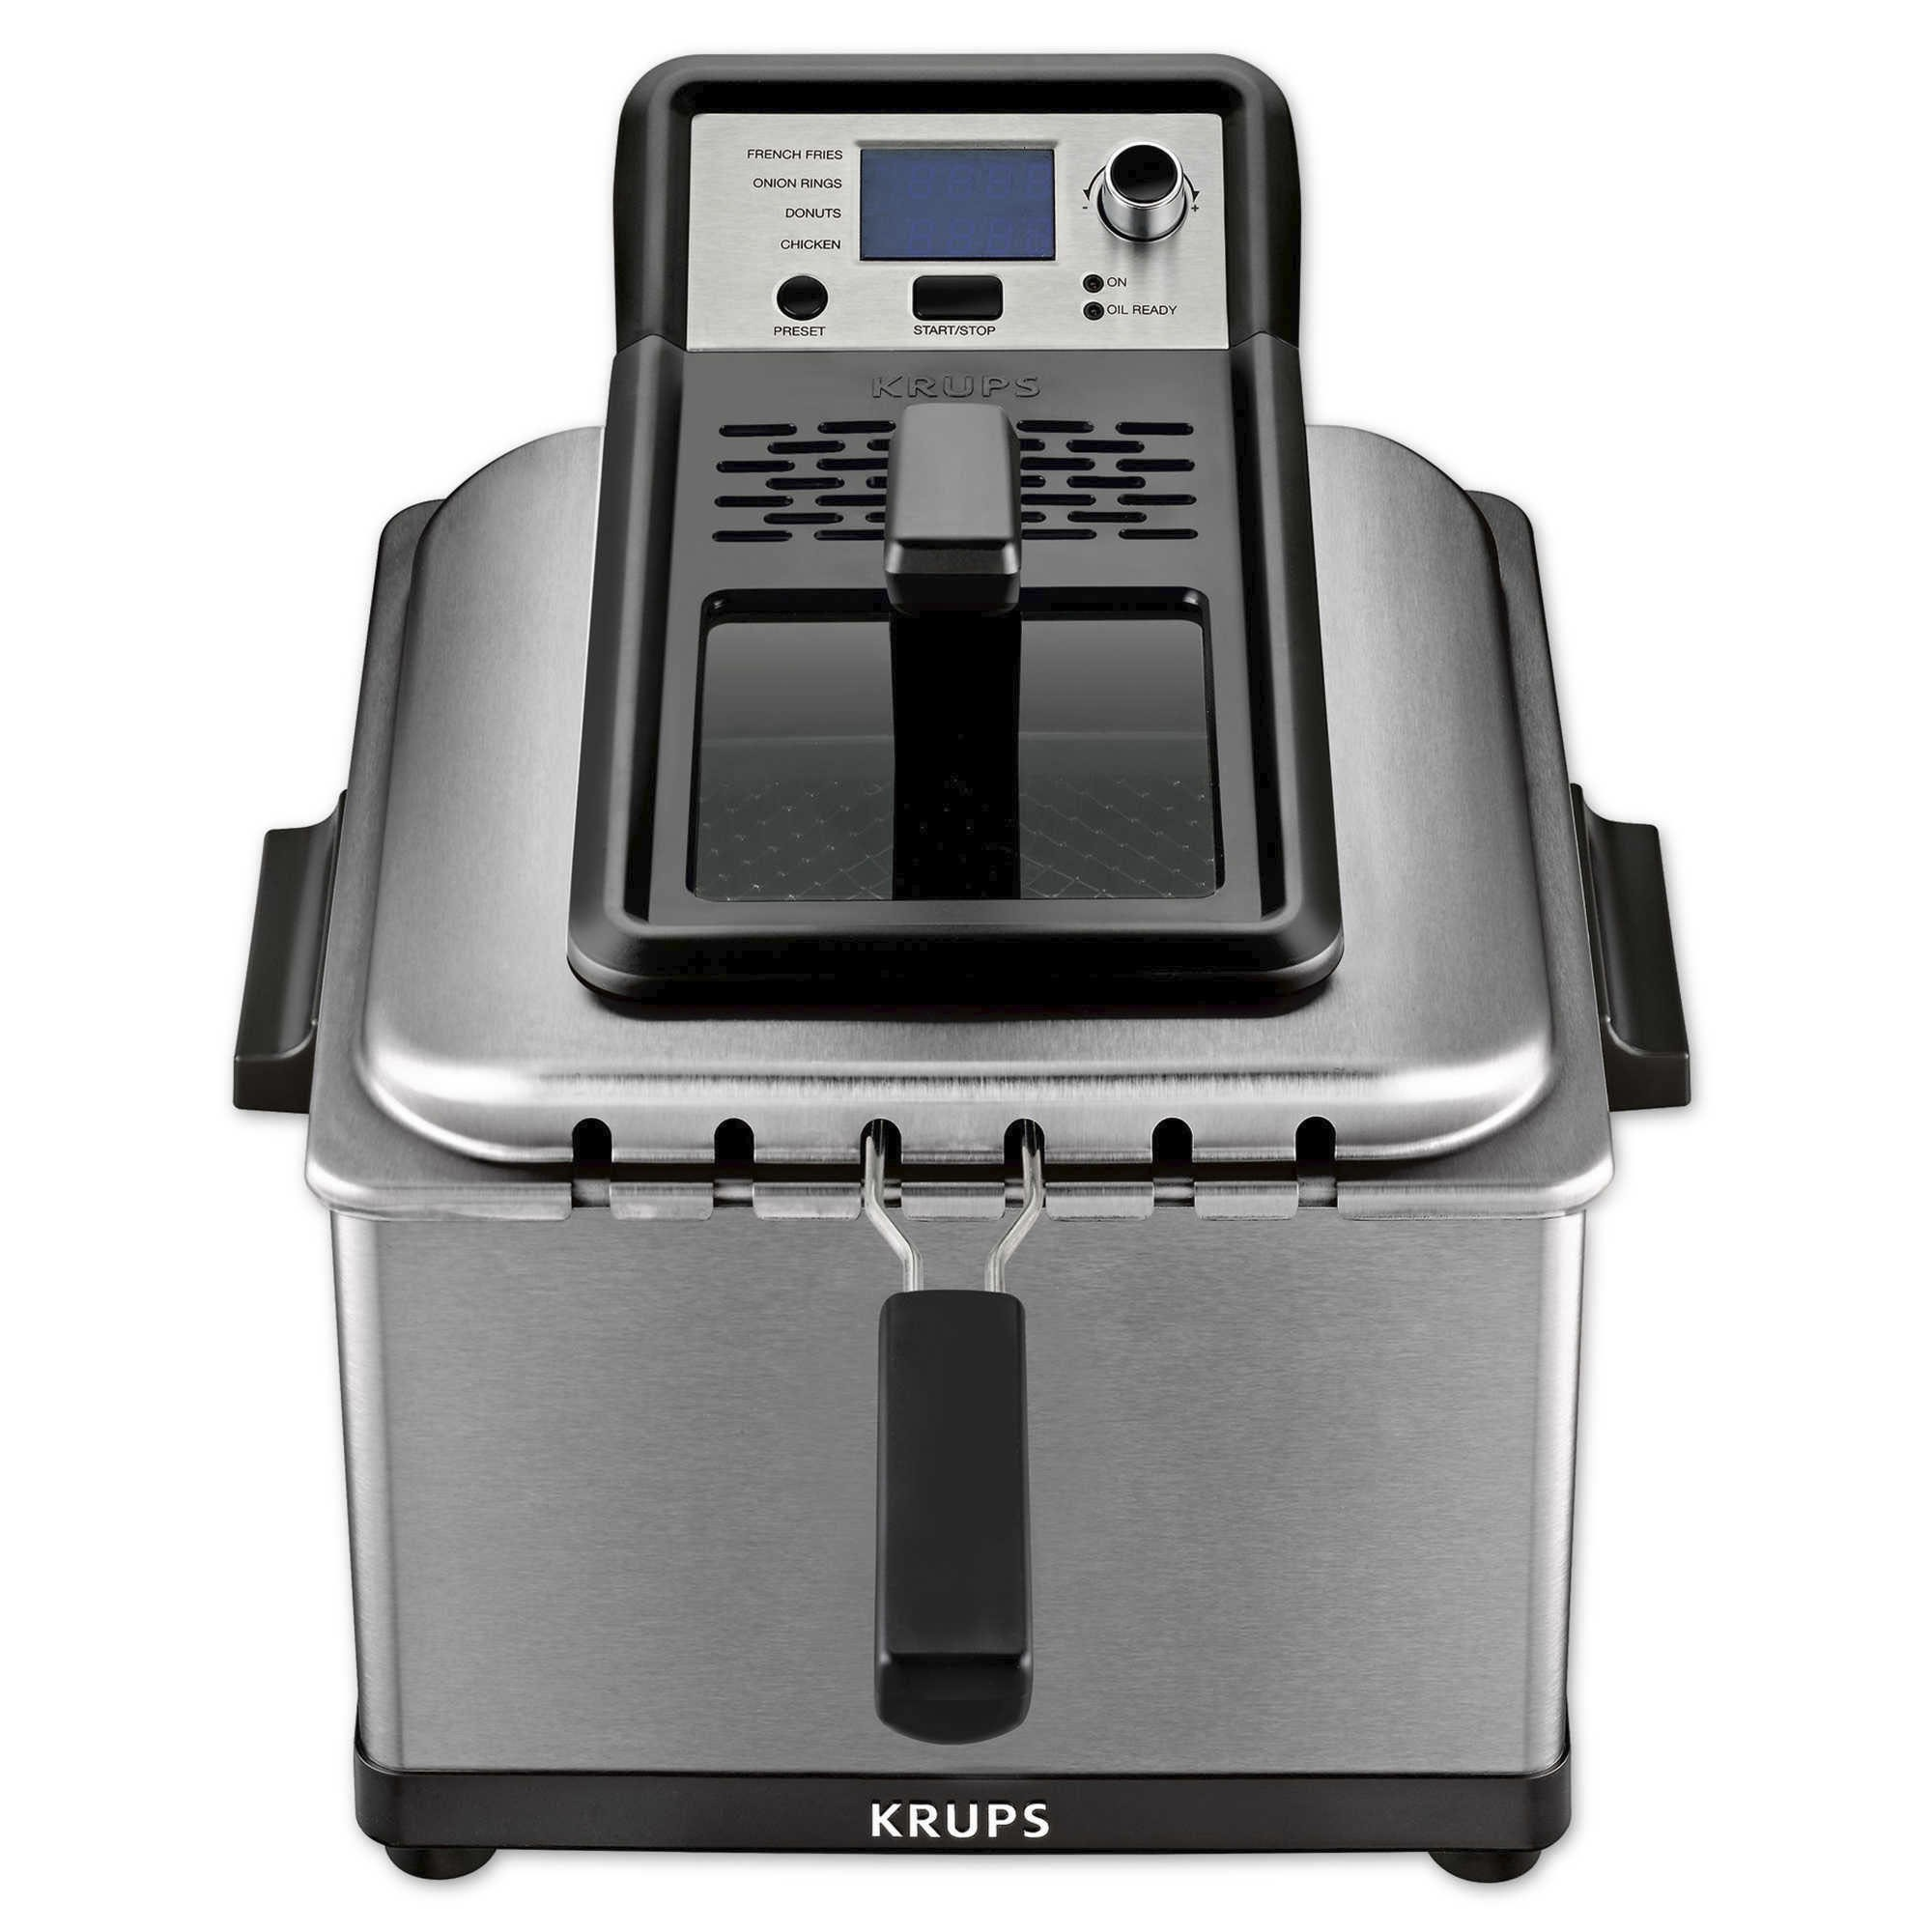 KRUPS, Professional Deep Fryer with 3 Frying Baskets, Stainless Steel KJ502D51